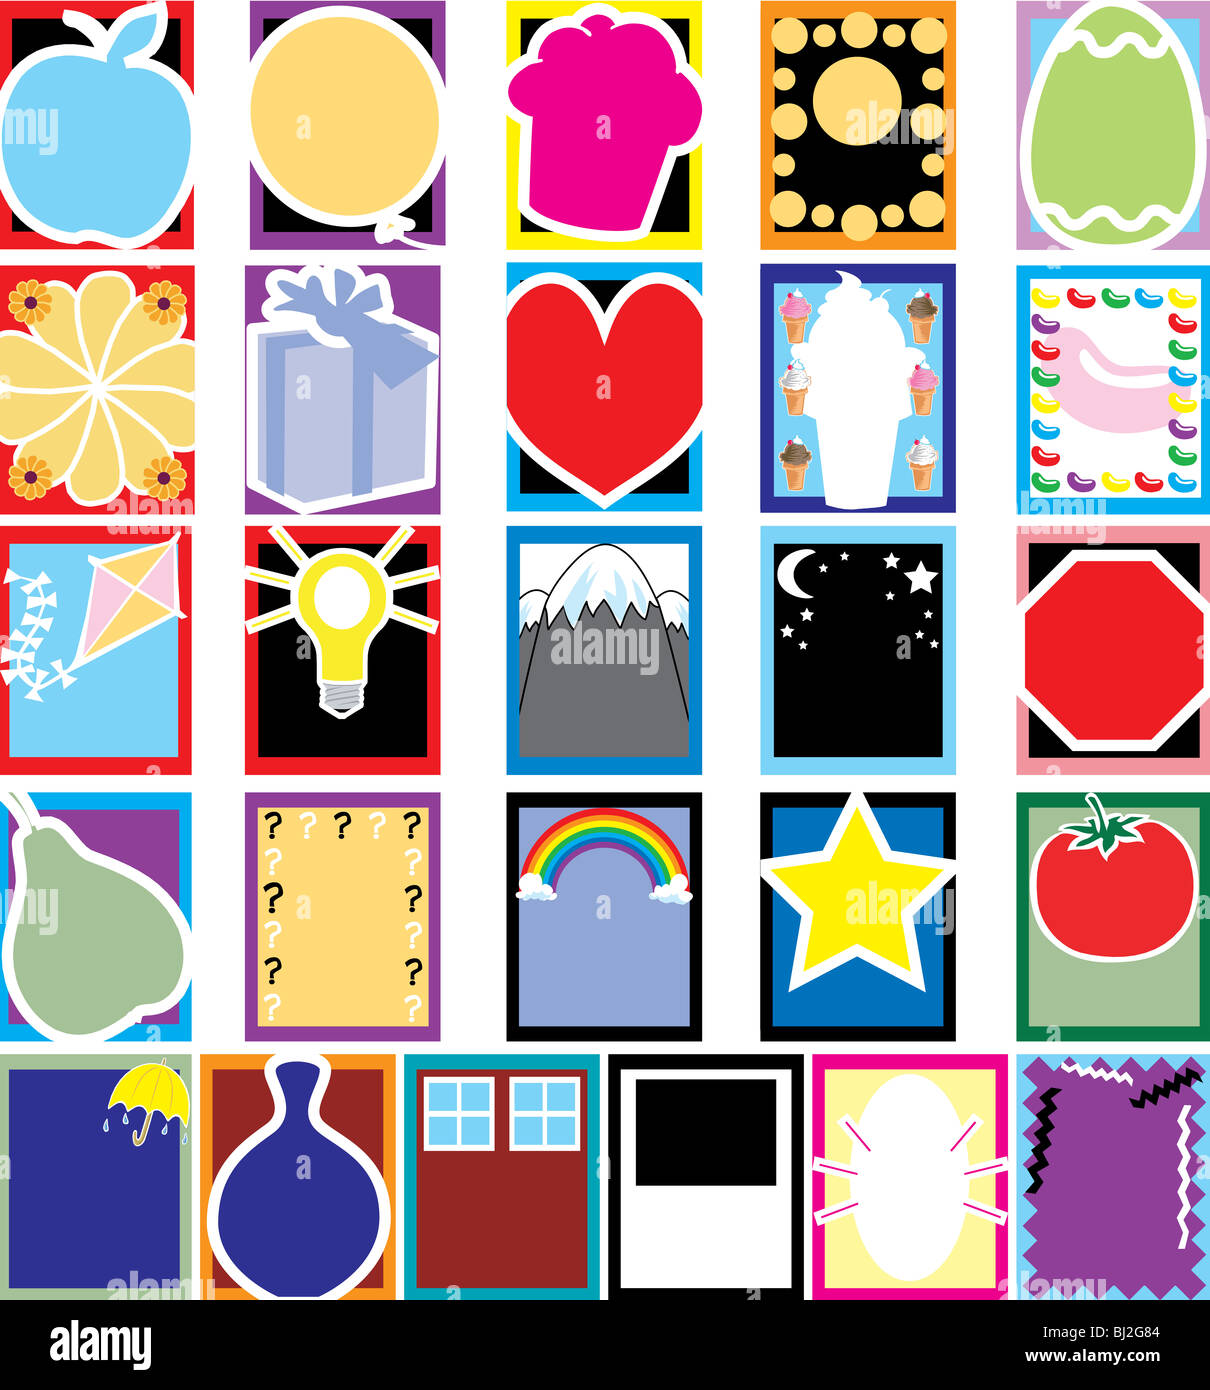 Vector Fun 26 Colorful Object Silhouette cards or templates. No ...